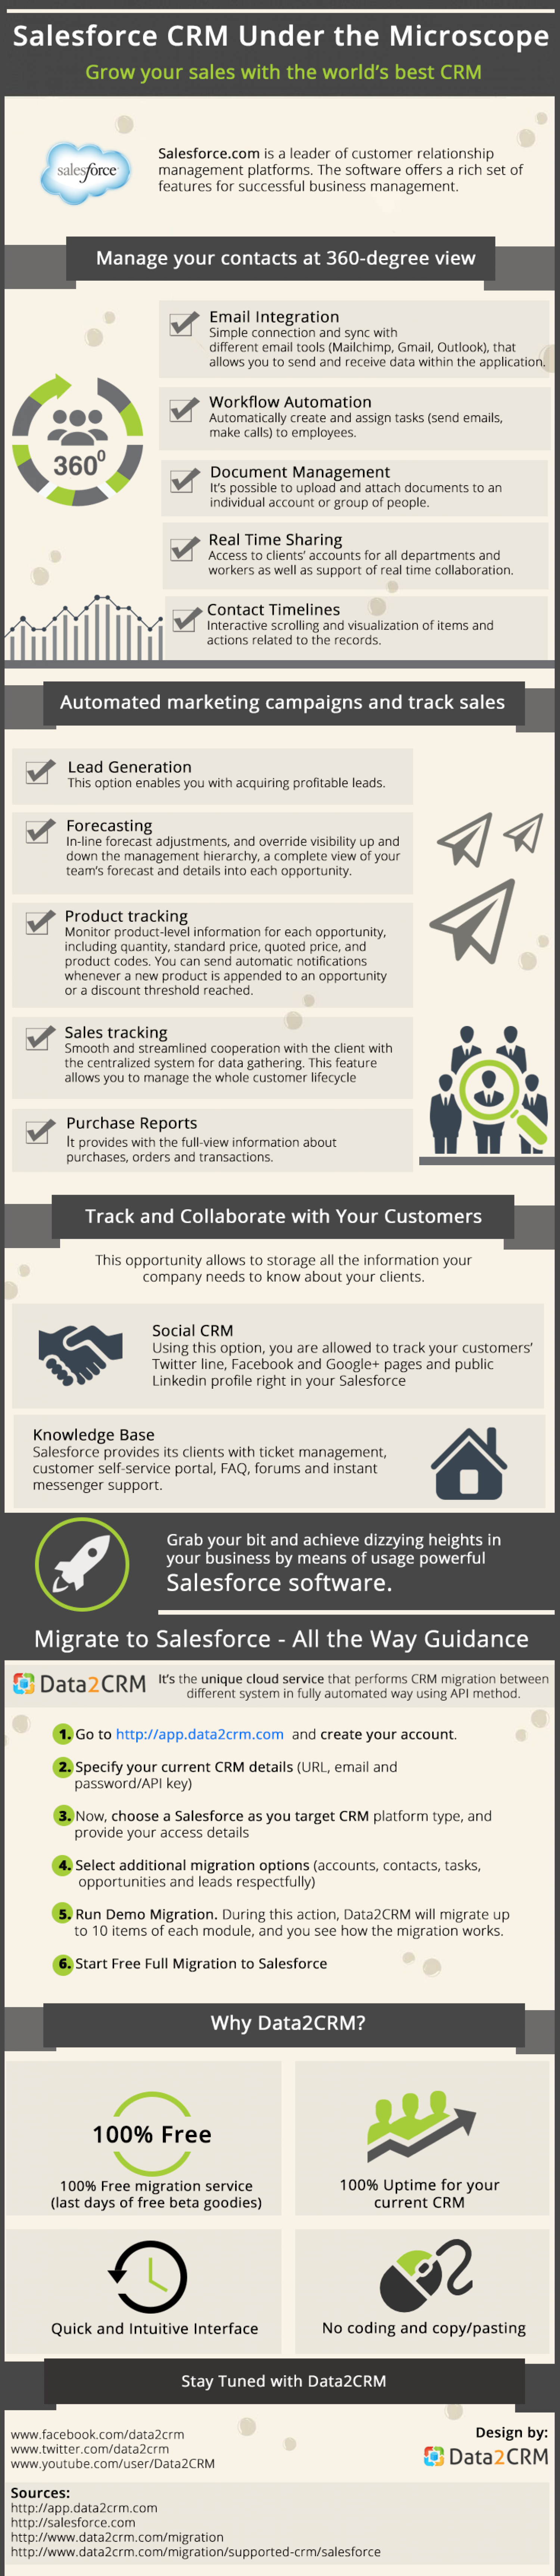 Salesforce CRM Under the Microscope Infographic